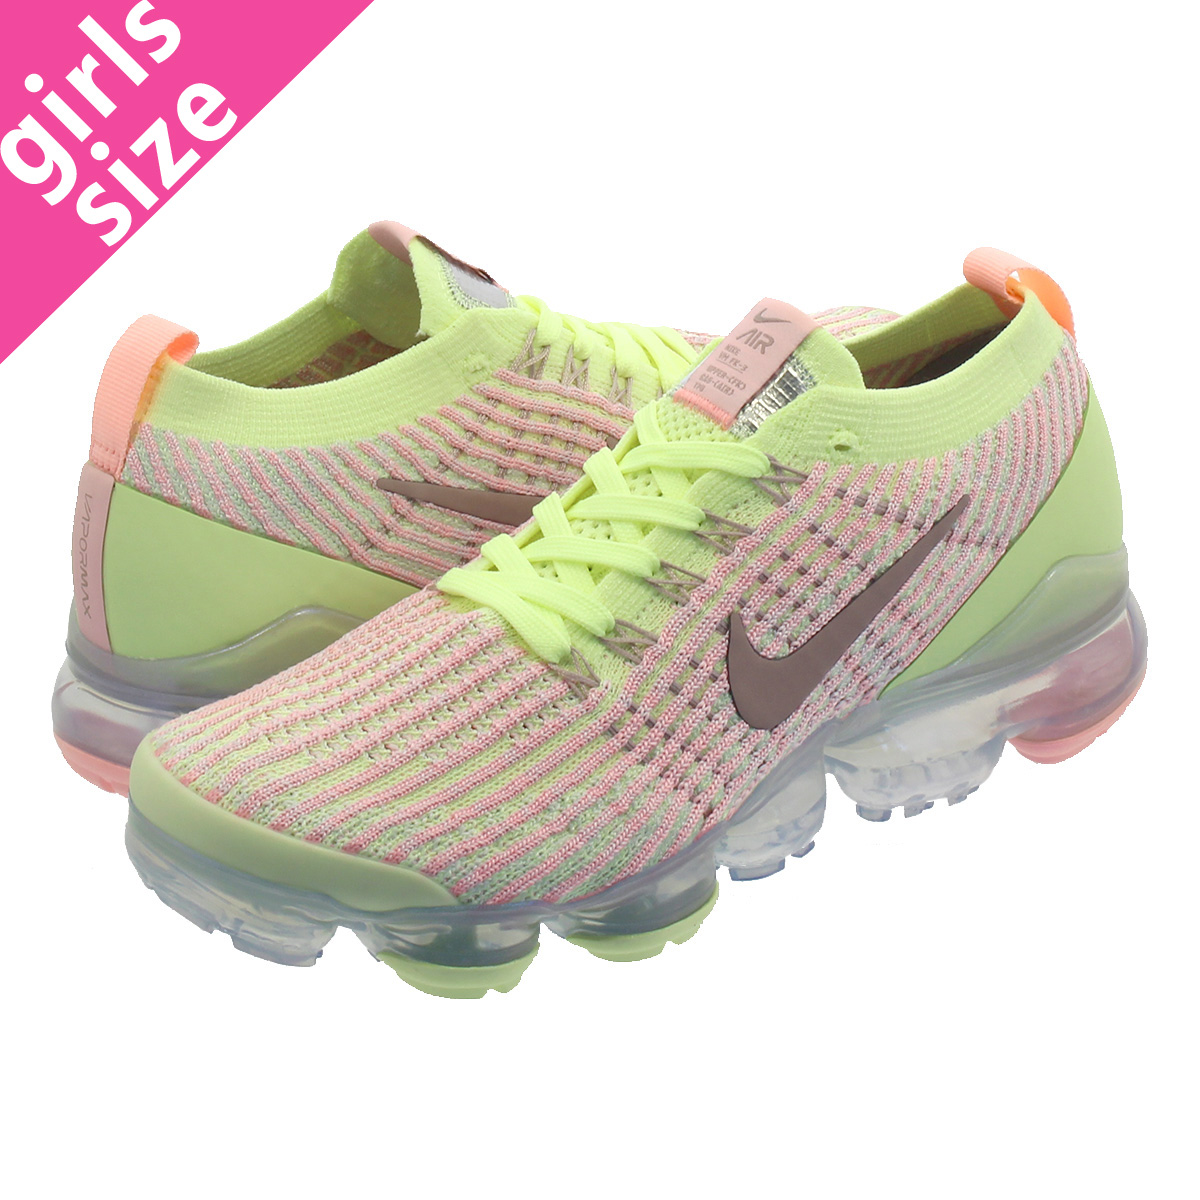 279f7bf38e6 NIKE WMNS AIR VAPORMAX FLYKNIT 3 Nike women vapor max fried food knit 3  BARELY VOLT ...